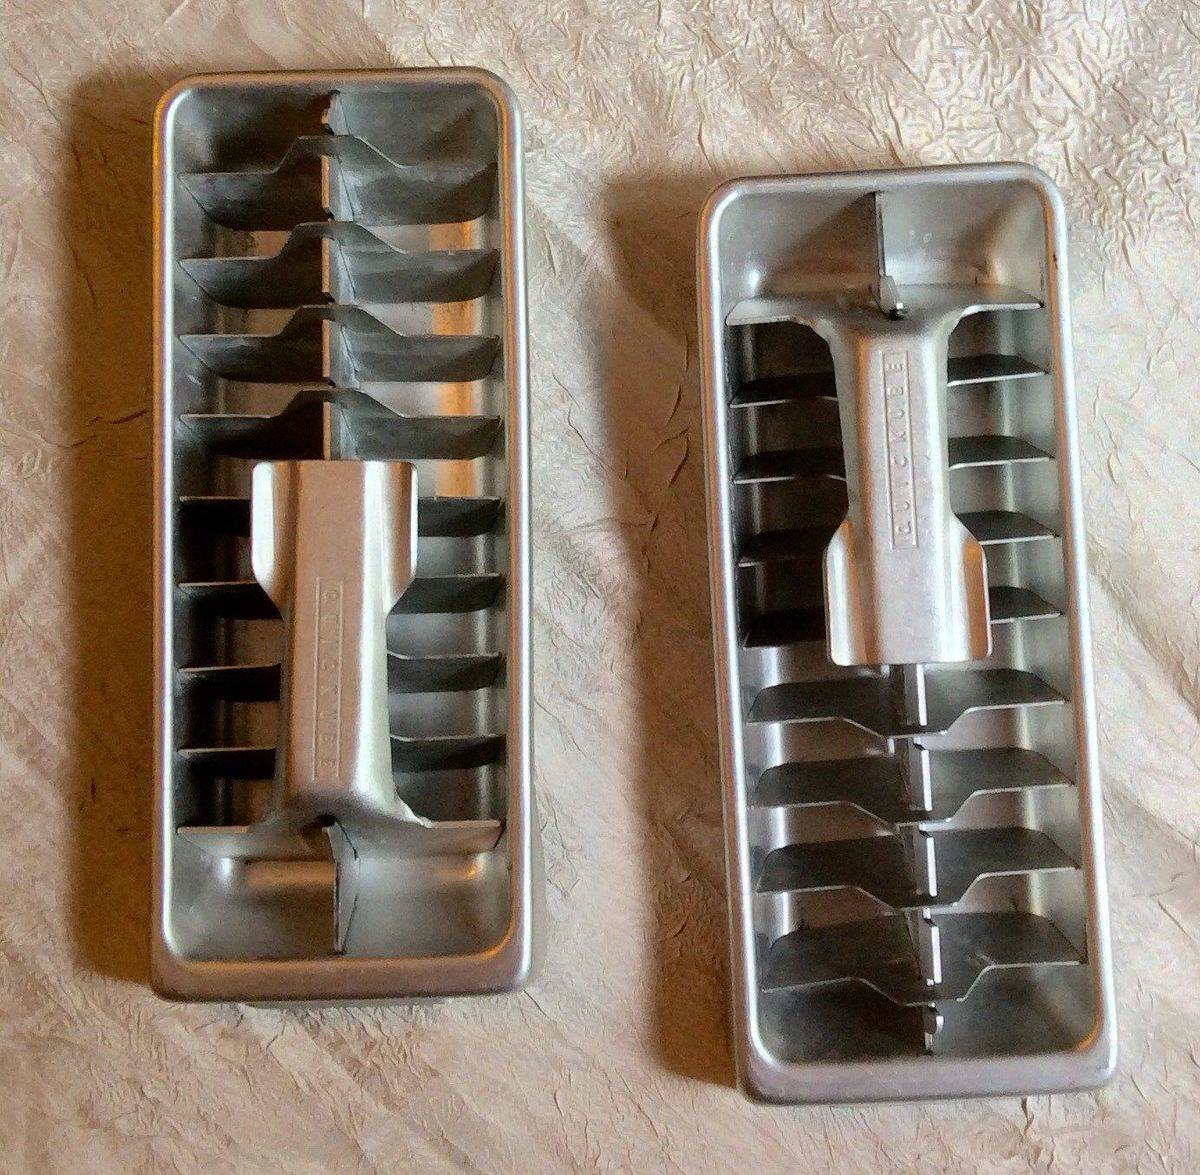 People Used To Make Ice In Aluminum Trays